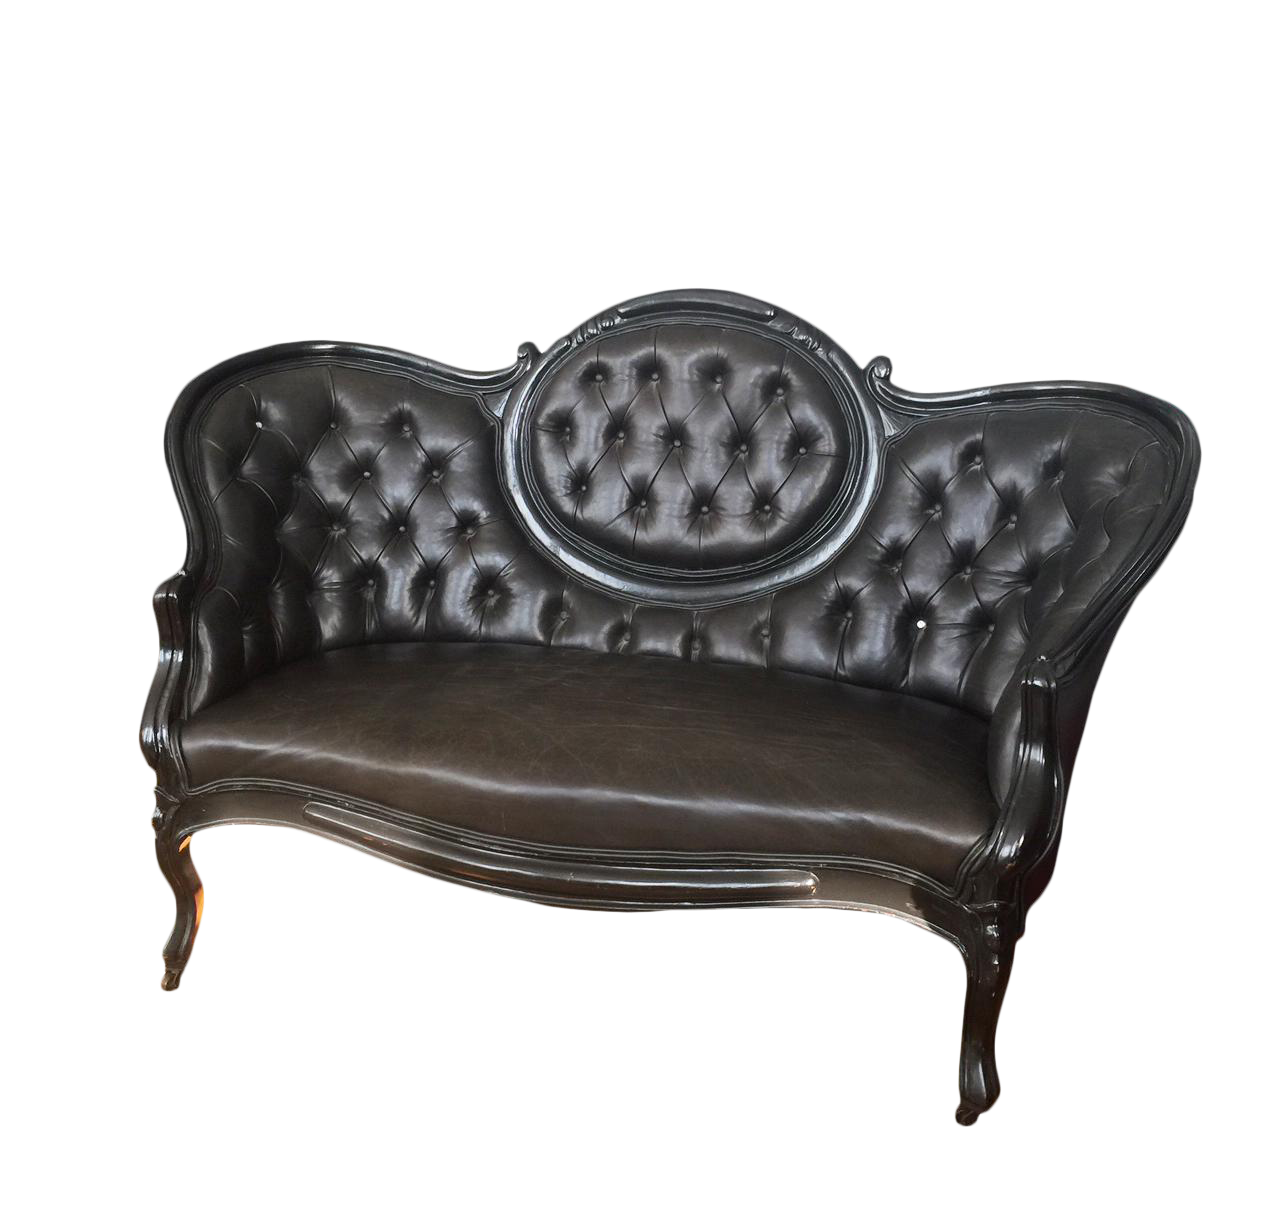 Victorian couch png. Settee love seat in